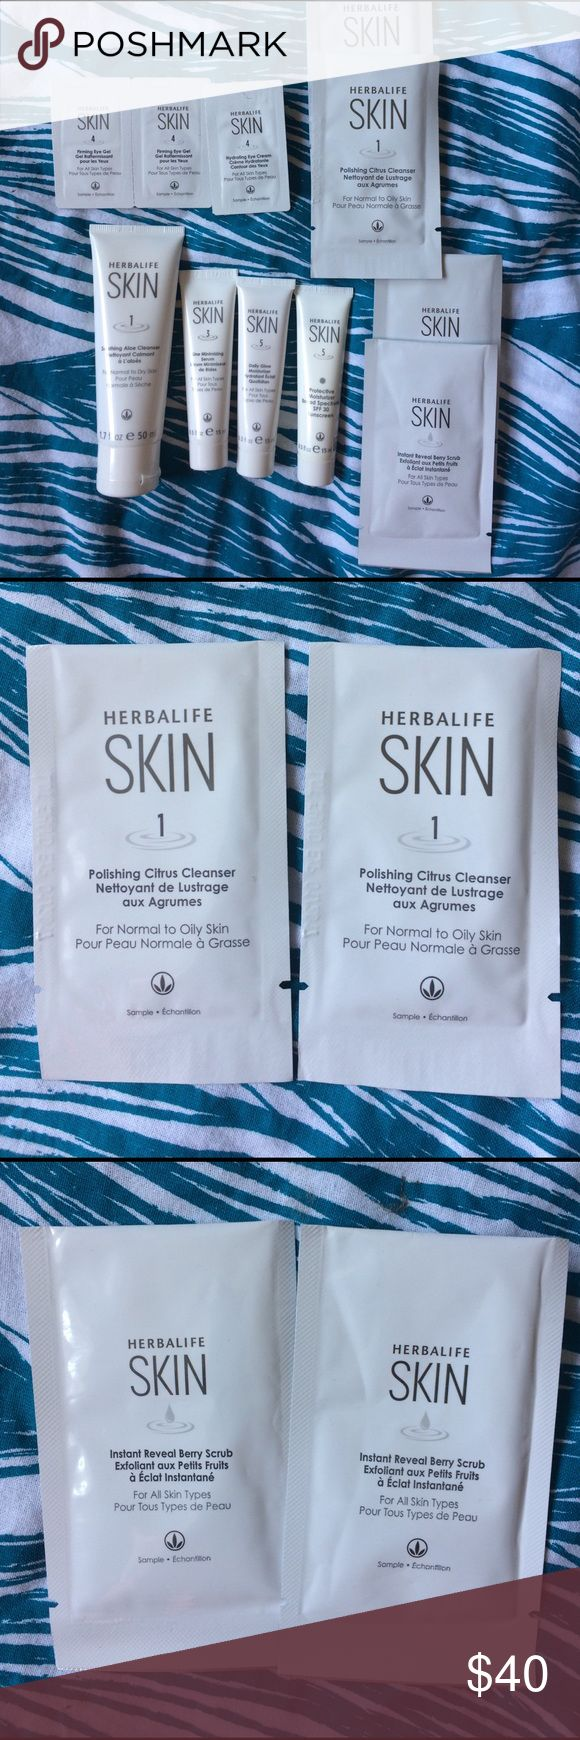 Herbalife skin care Herbalife skincare kit: 2 instant reveal berry scrub, 2 polishing citrus cleanser, 3 firming eye gels, 1 soothing aloe cleanser, 1 protective moisturizer, 1 line minimizing serum, 1 daily glow. All new, never used. Makeup